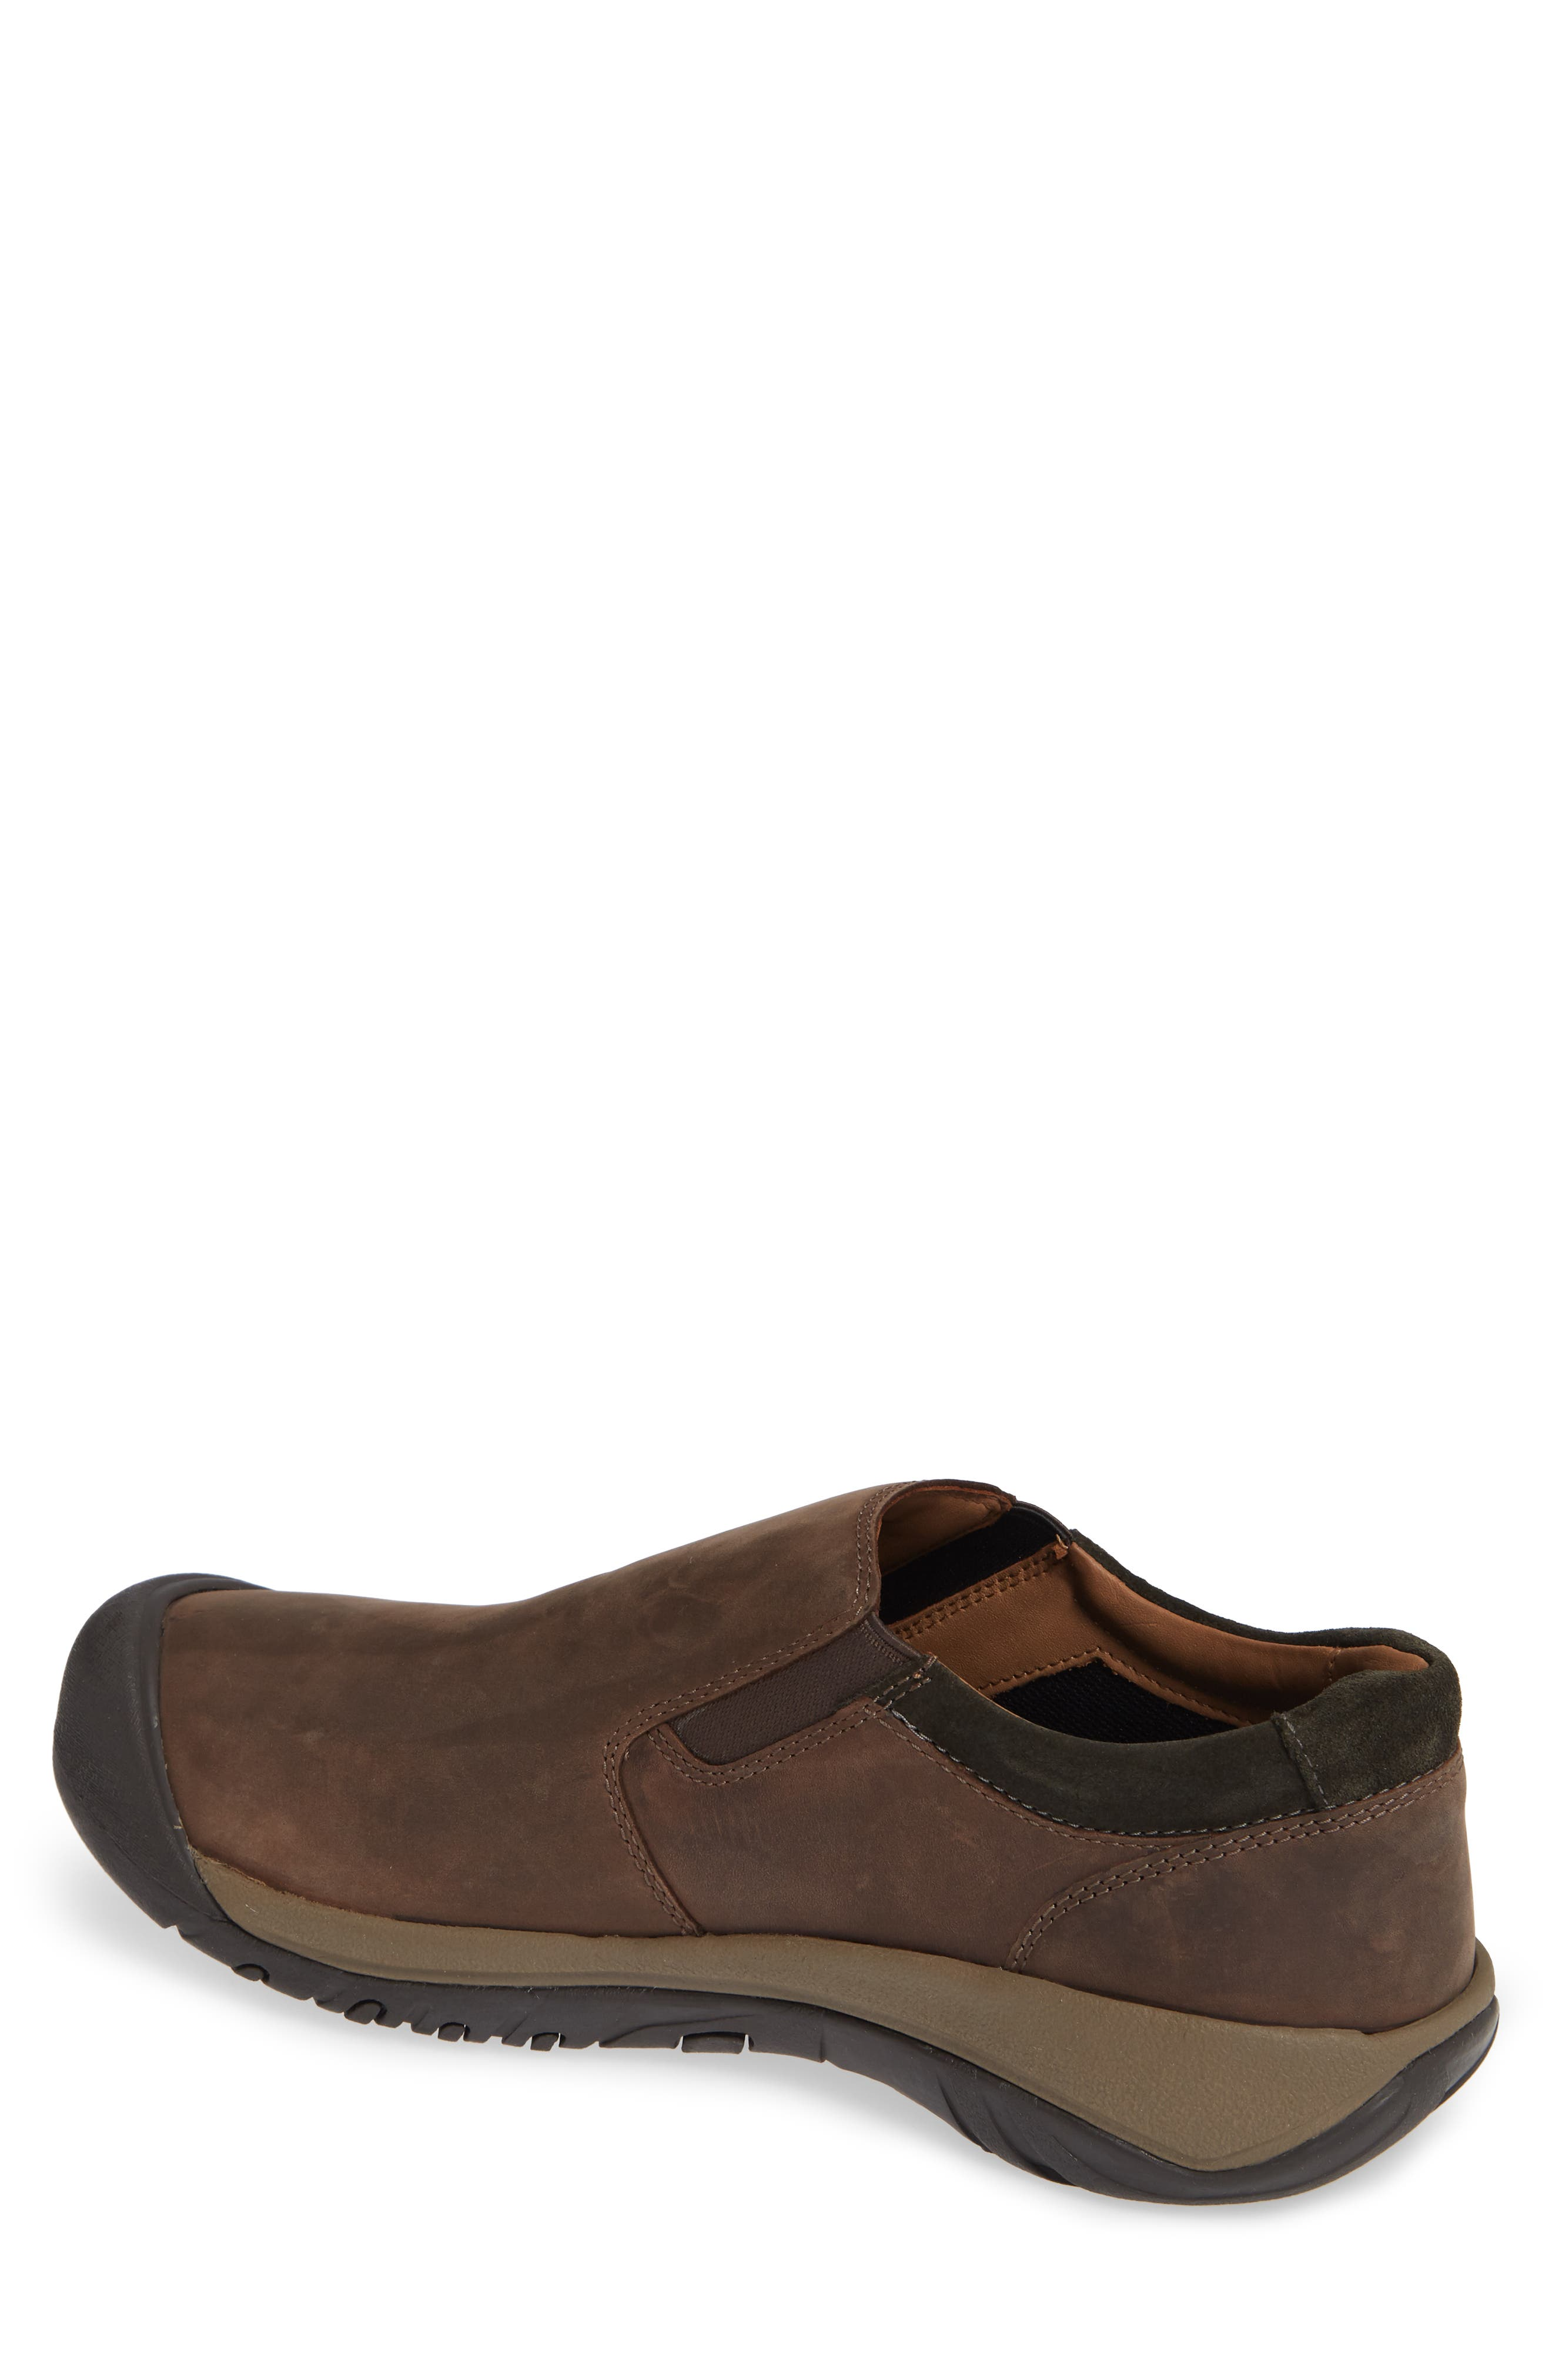 KEEN,                             Austin Water Resistant Slip-On Sneaker,                             Alternate thumbnail 2, color,                             CHOCOLATE BROWN/ BLACK OLIVE